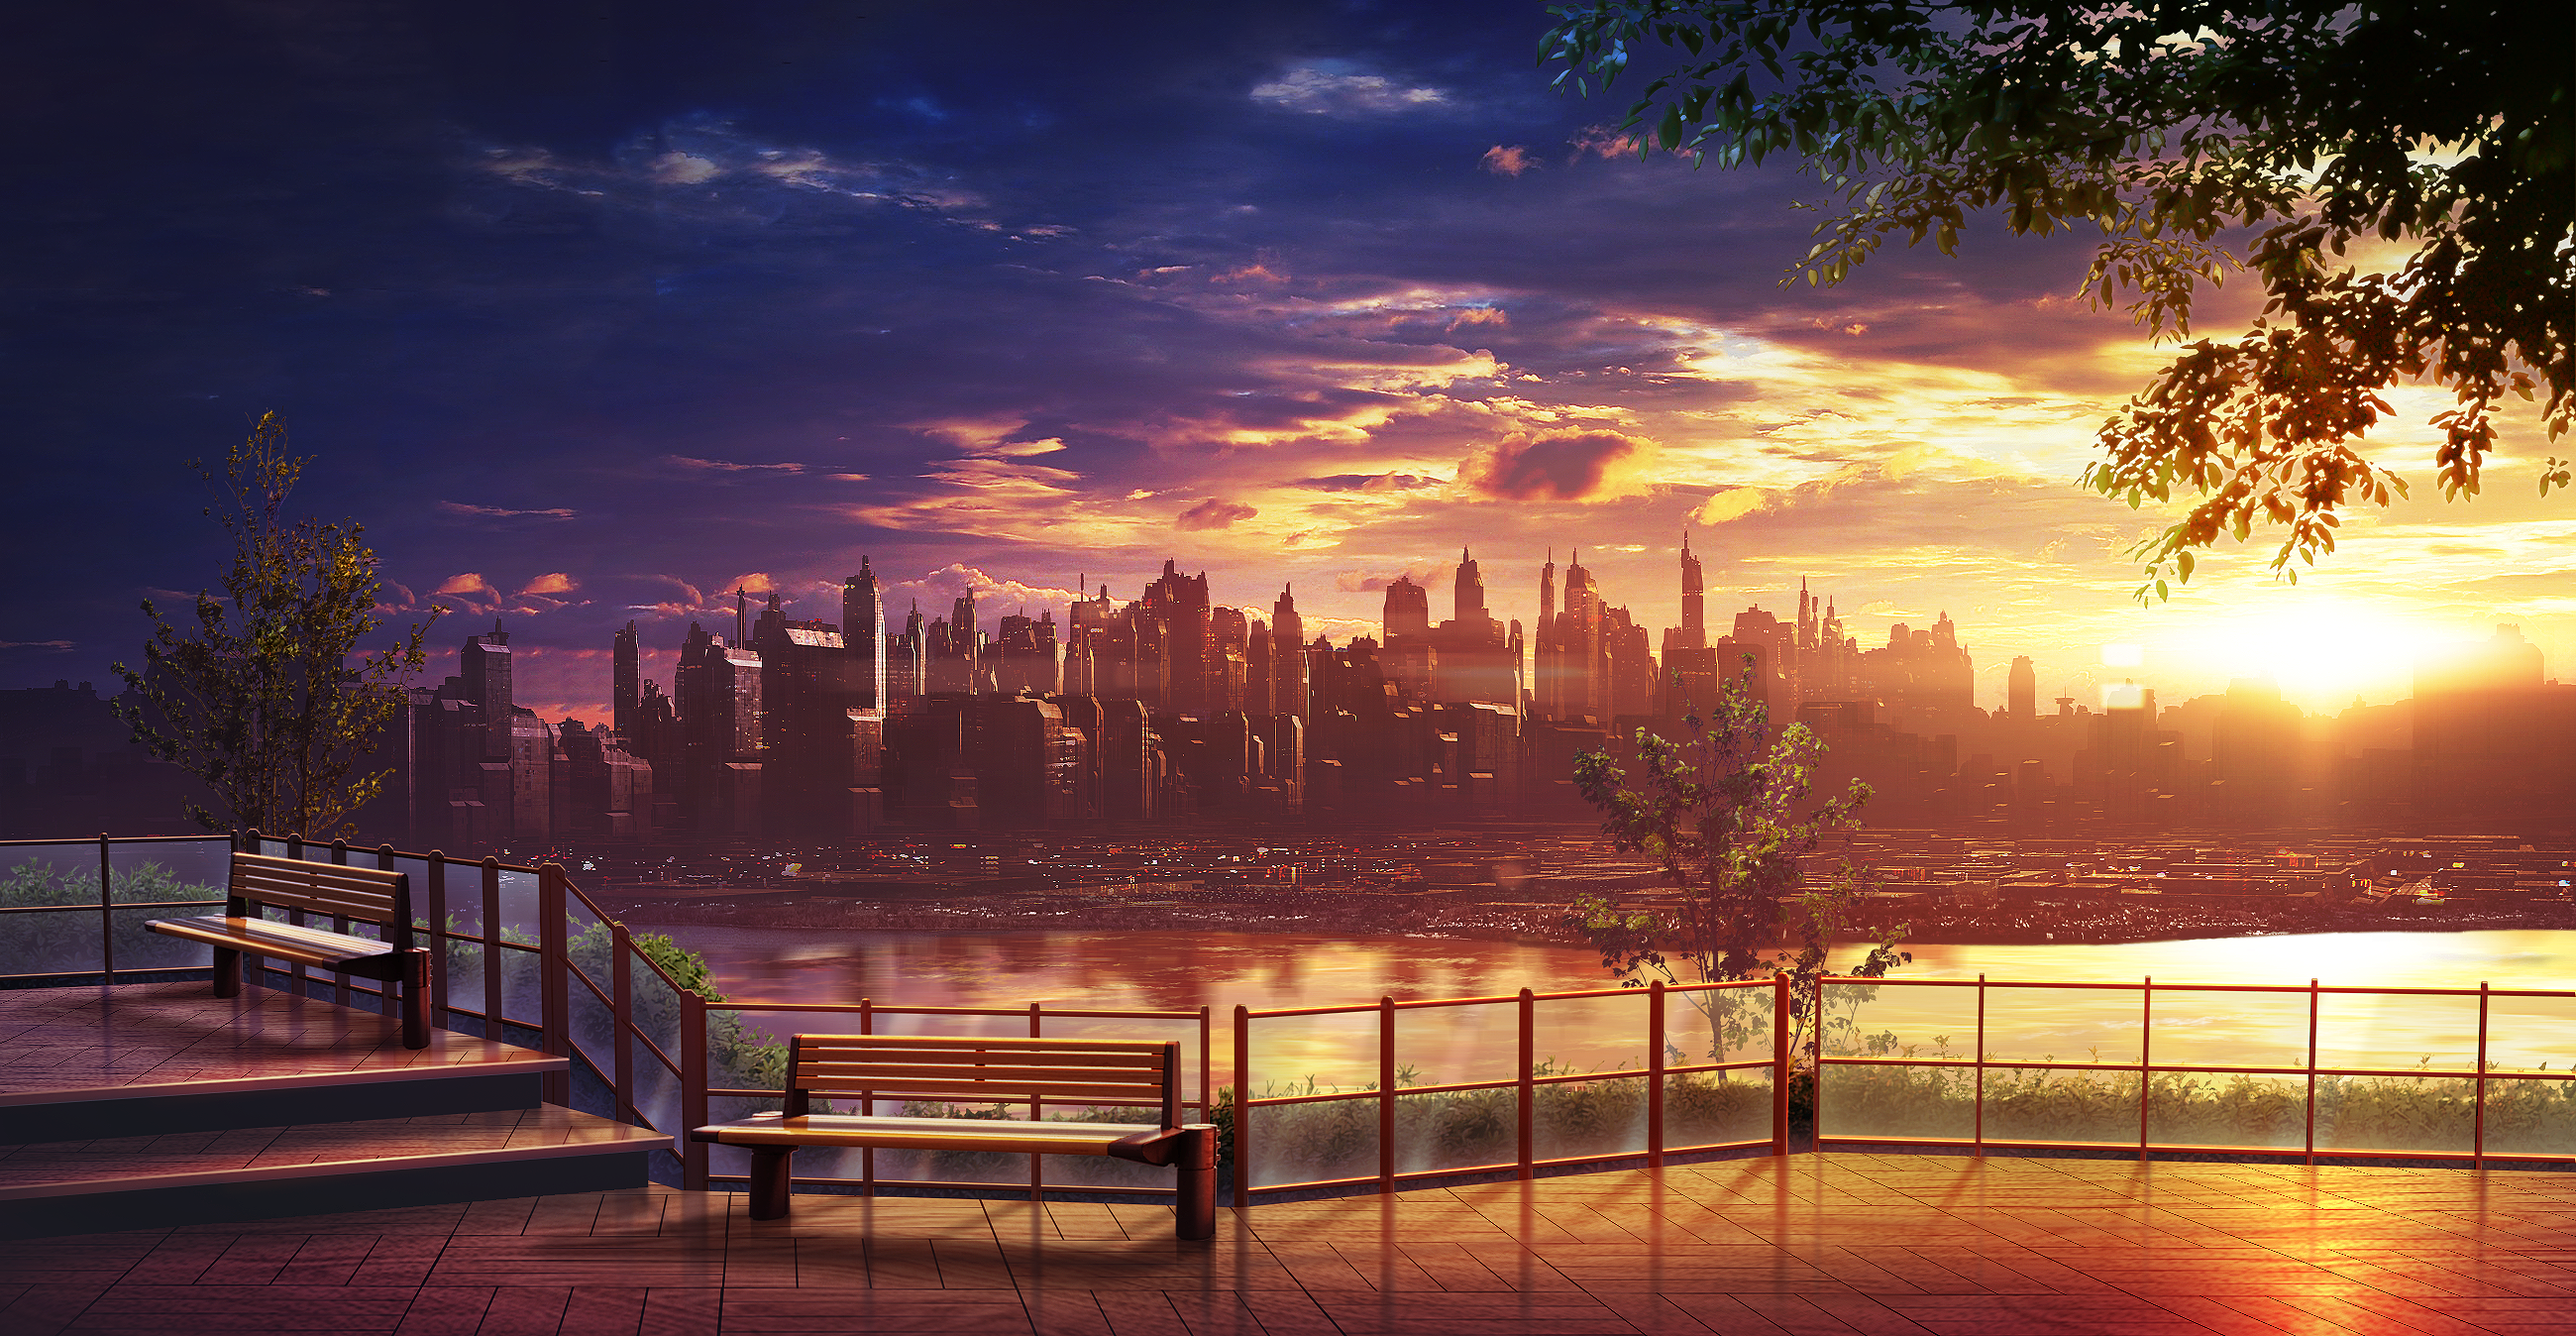 Anime City Sunset Wallpapers - Wallpaper Cave